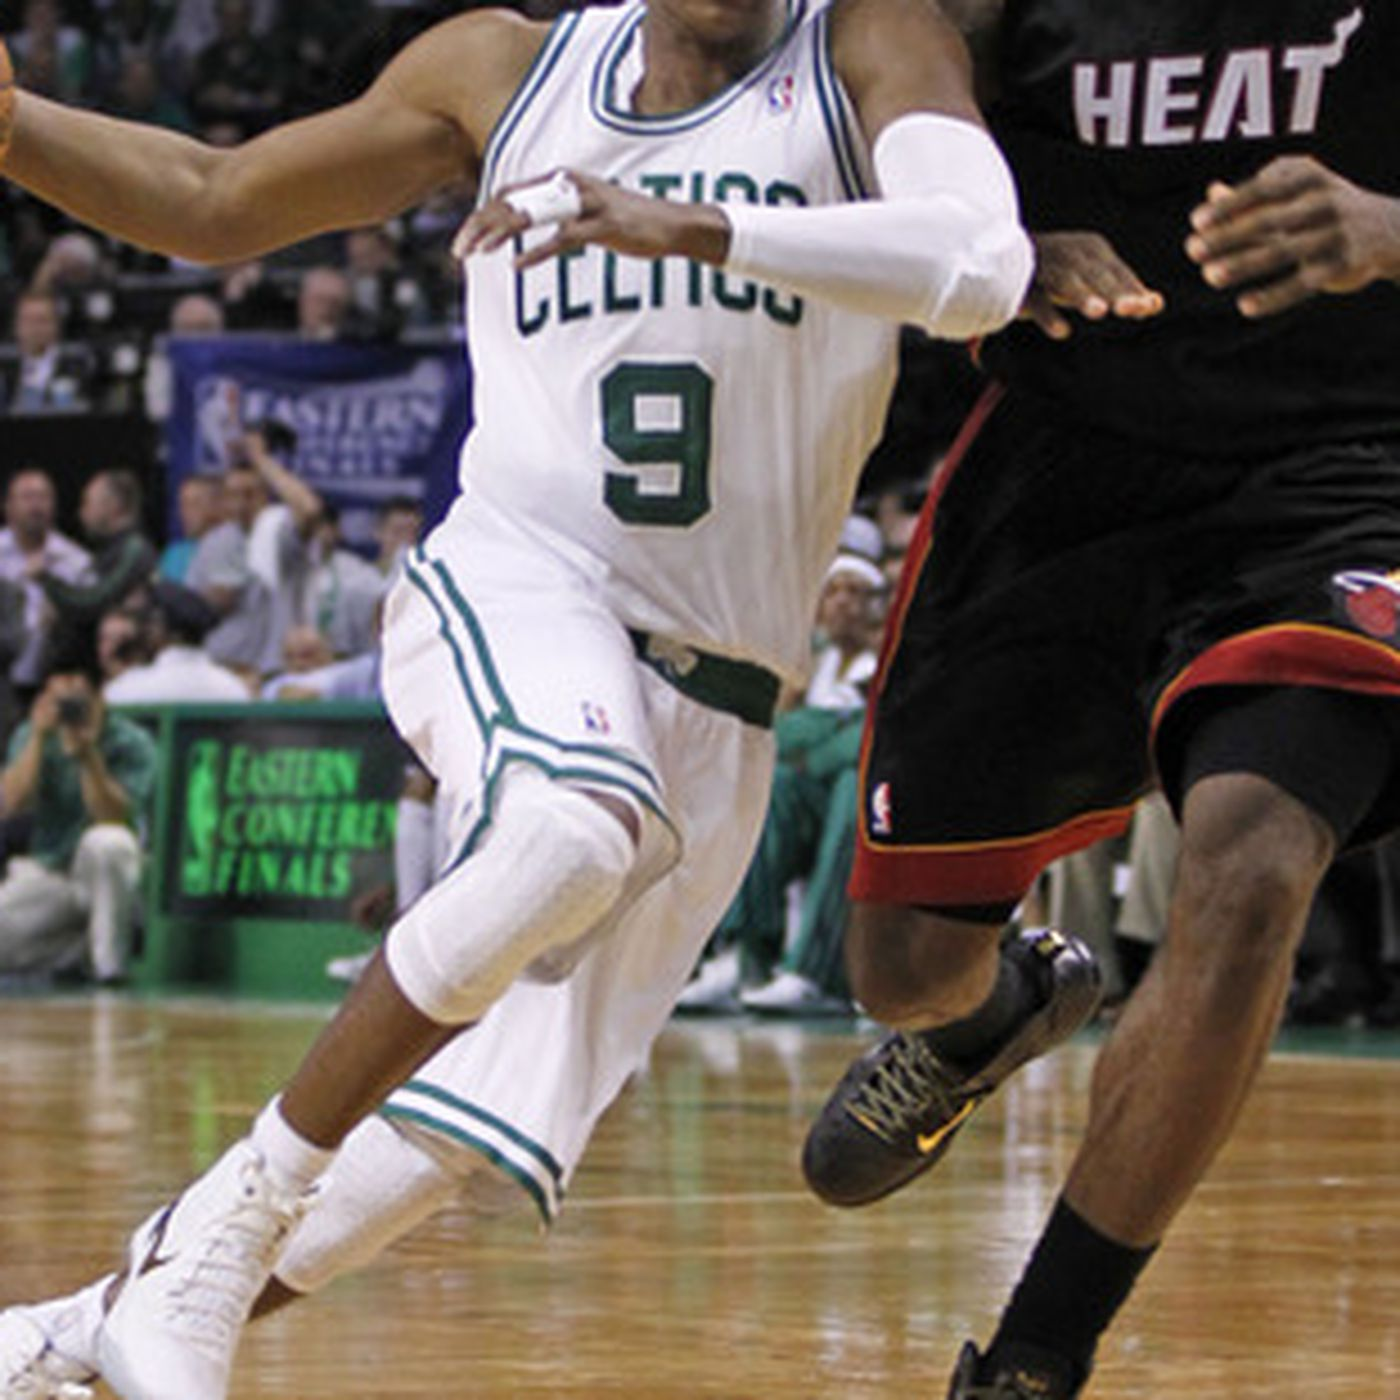 Nba Playoffs 2012 Celtics Vs Heat Game 4 Game Time Tv Schedule And More Sb Nation Boston